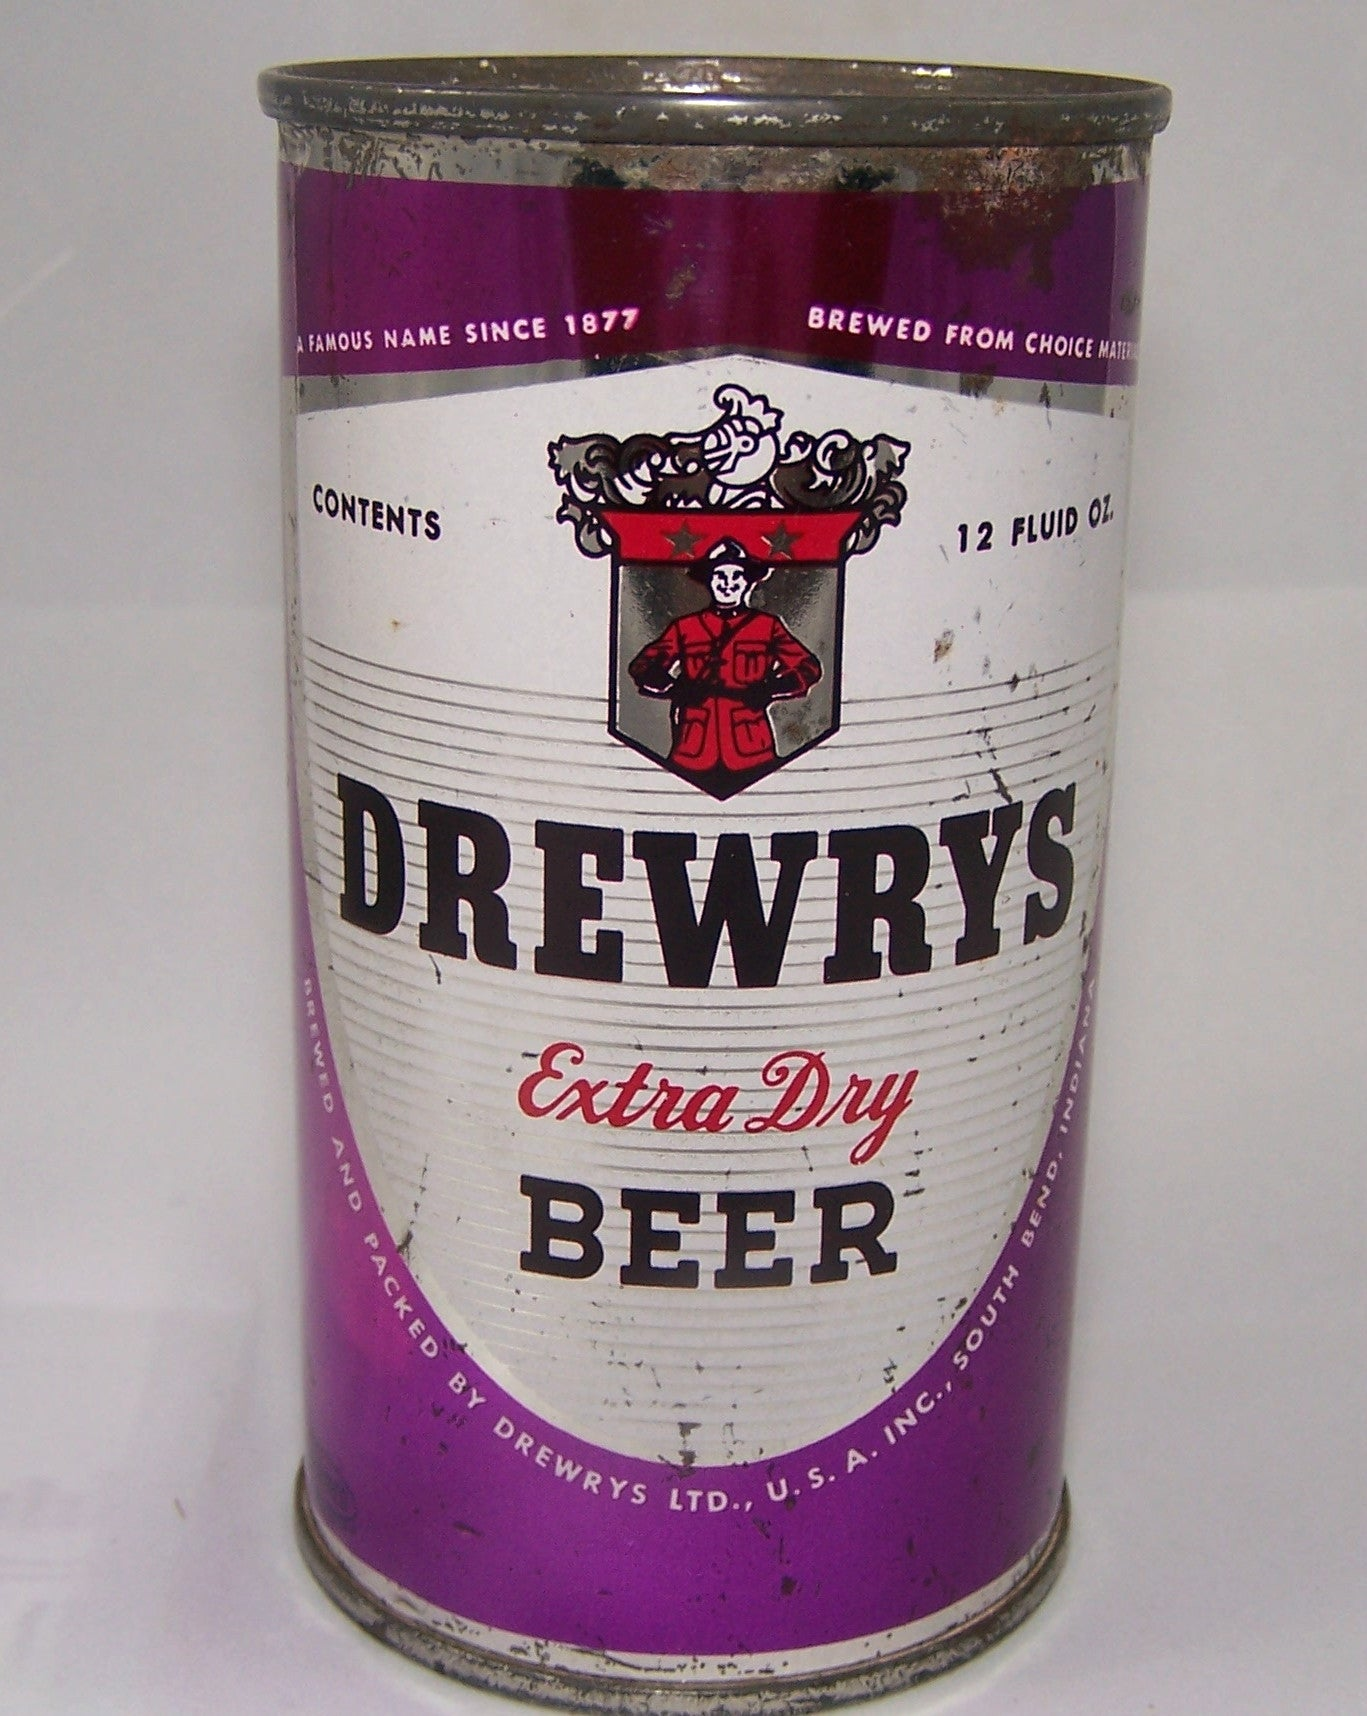 Drewrys Extra Dry Beer, Your Character, USBC 57-1, Grade 1- Sold on 5/17/19